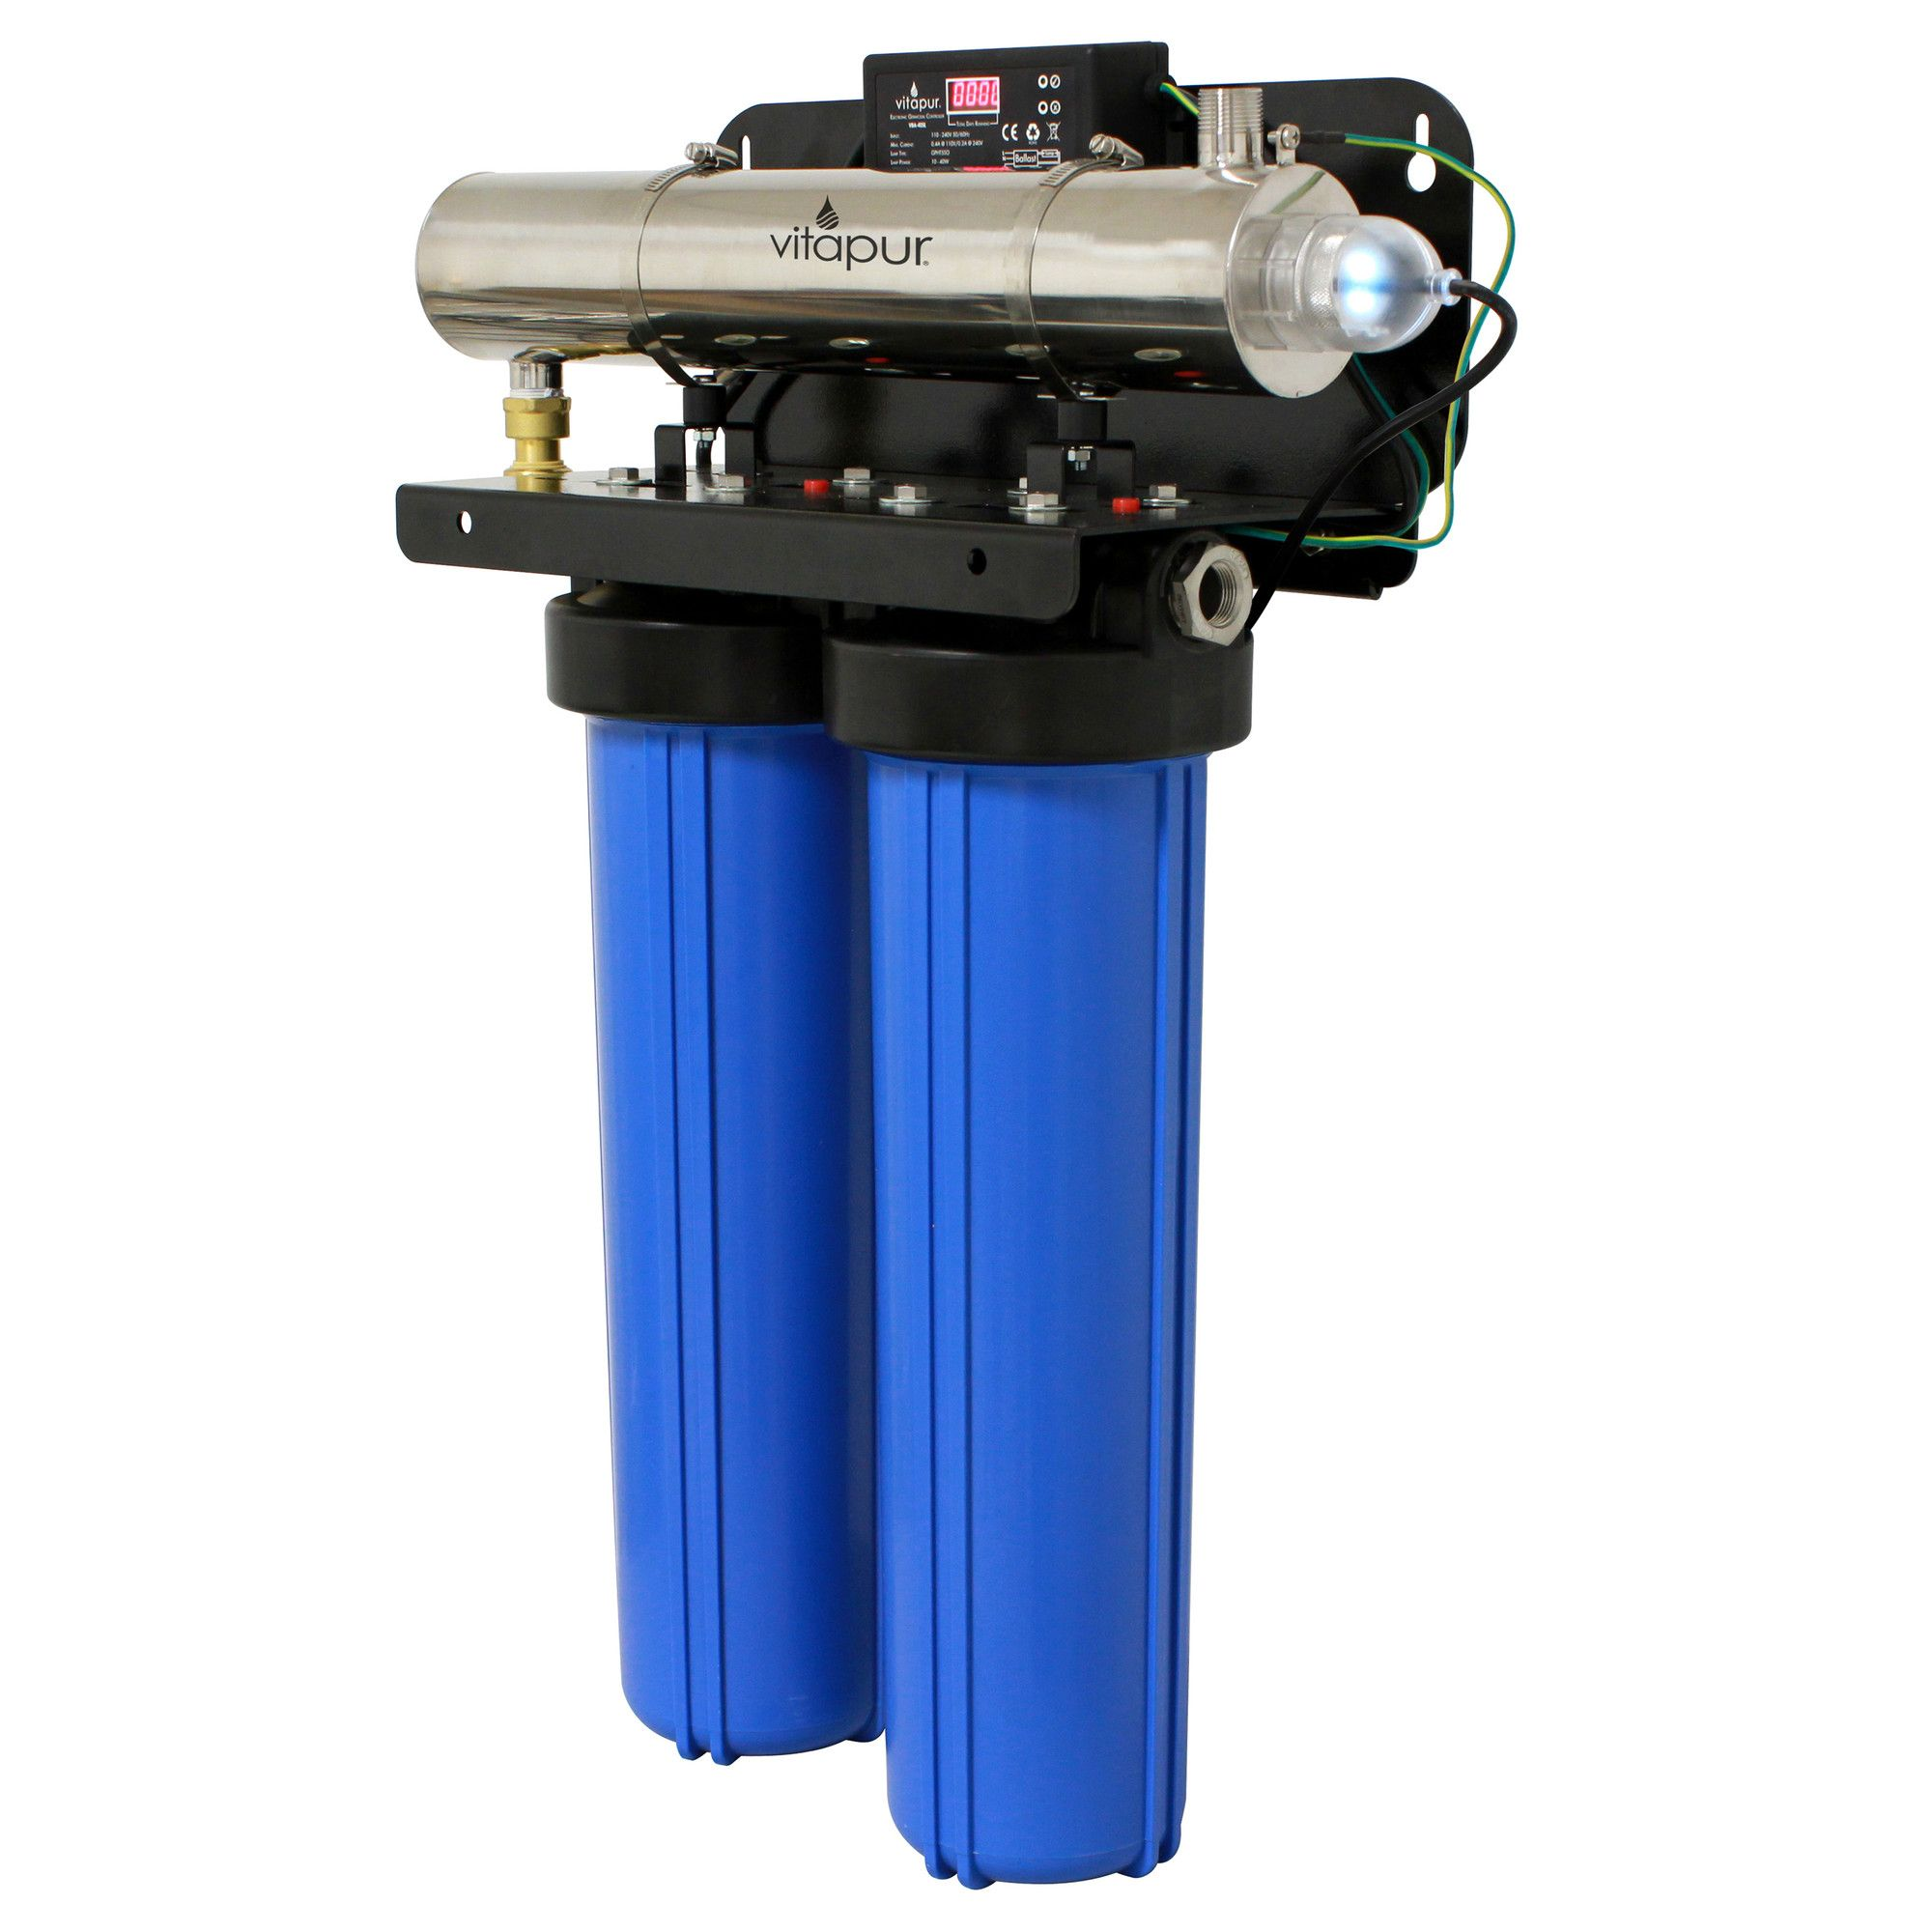 Ultraviolet Whole House Water Disinfection and Filtration